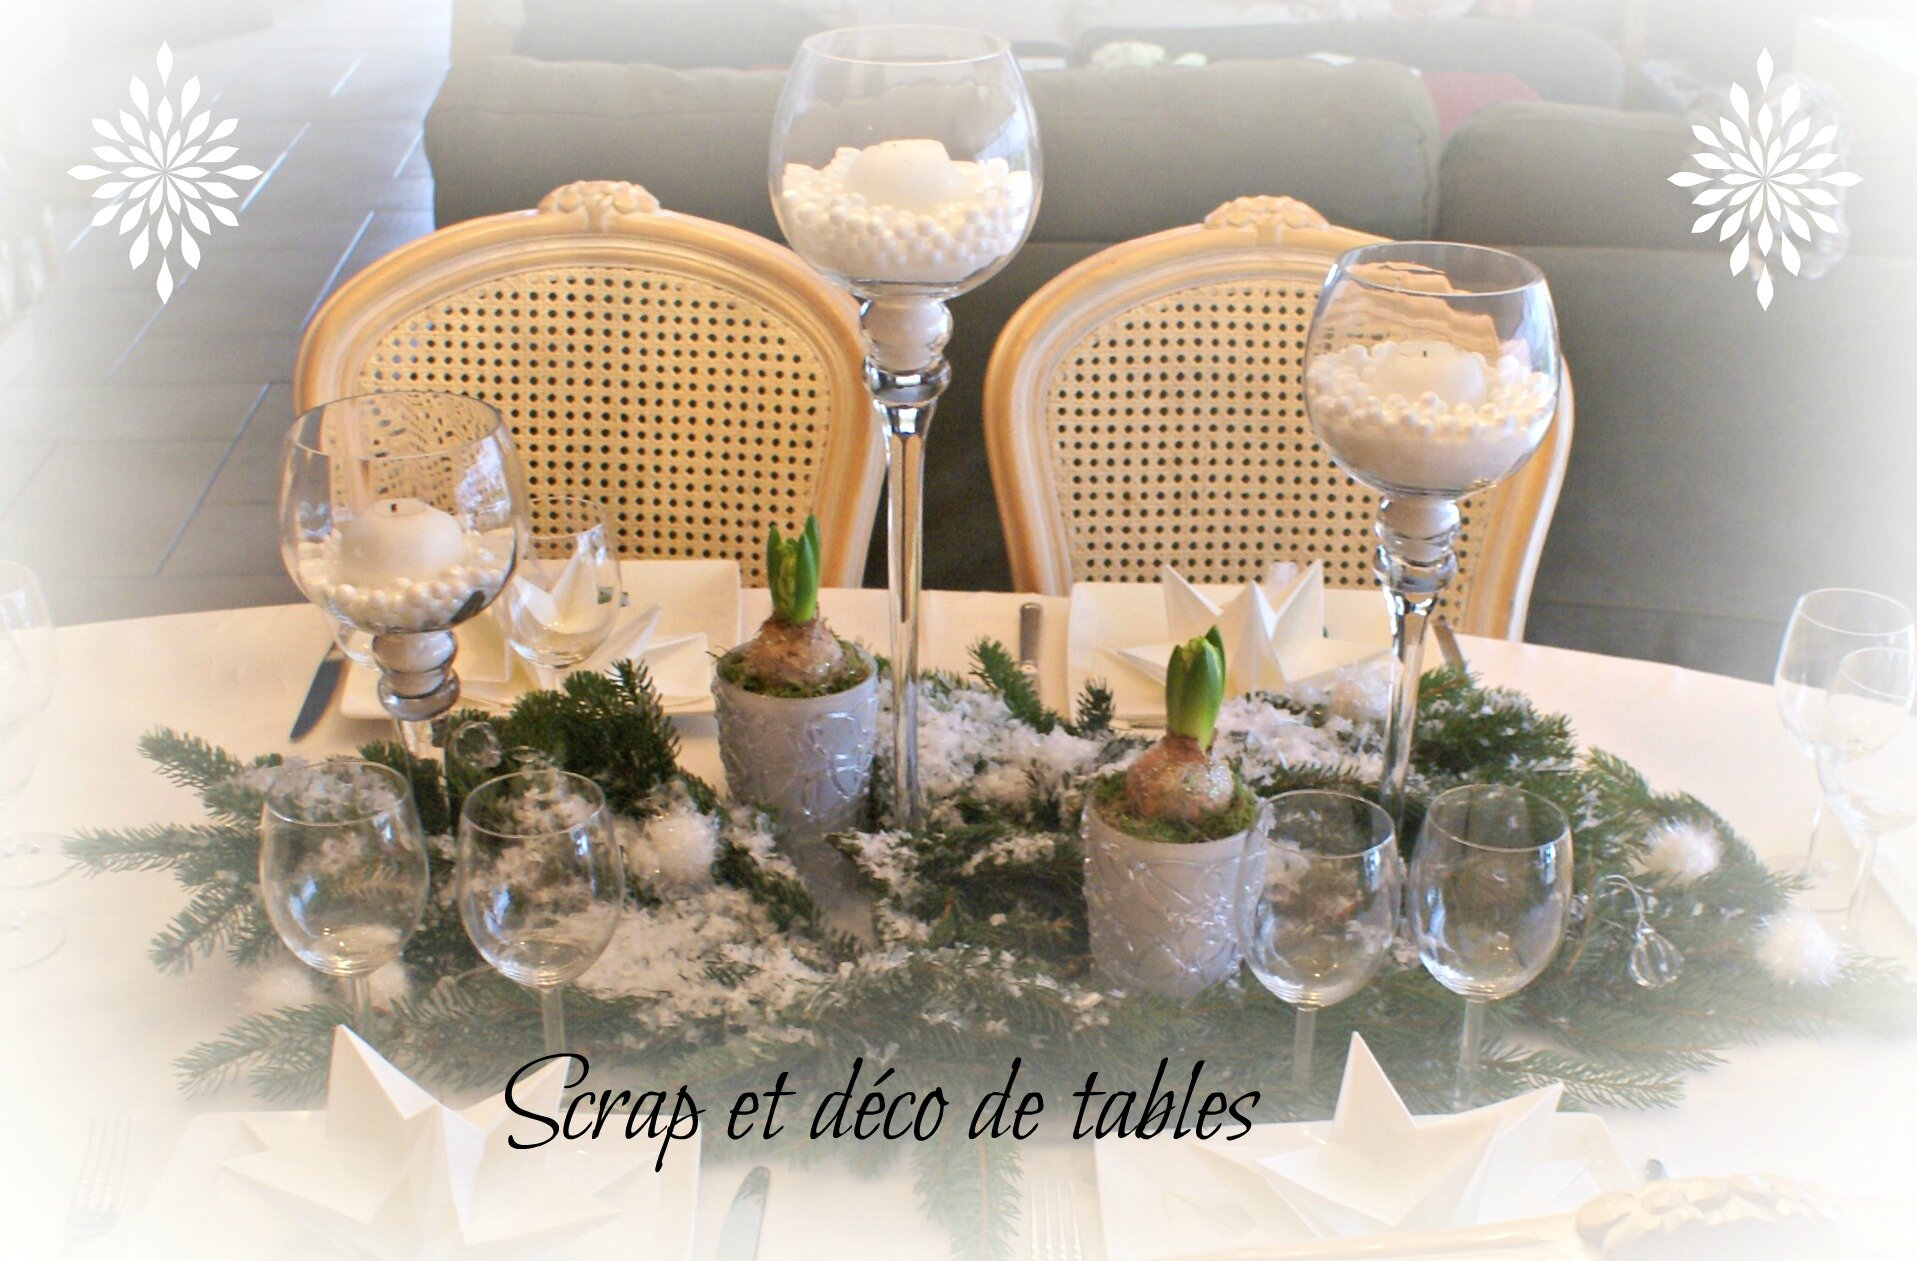 #956536 DECO TABLE DE NOËL EN BLANC Scrap Et Déco De Tables 7174 Deco De Table Noel Or Et Blanc 1917x1261 px @ aertt.com